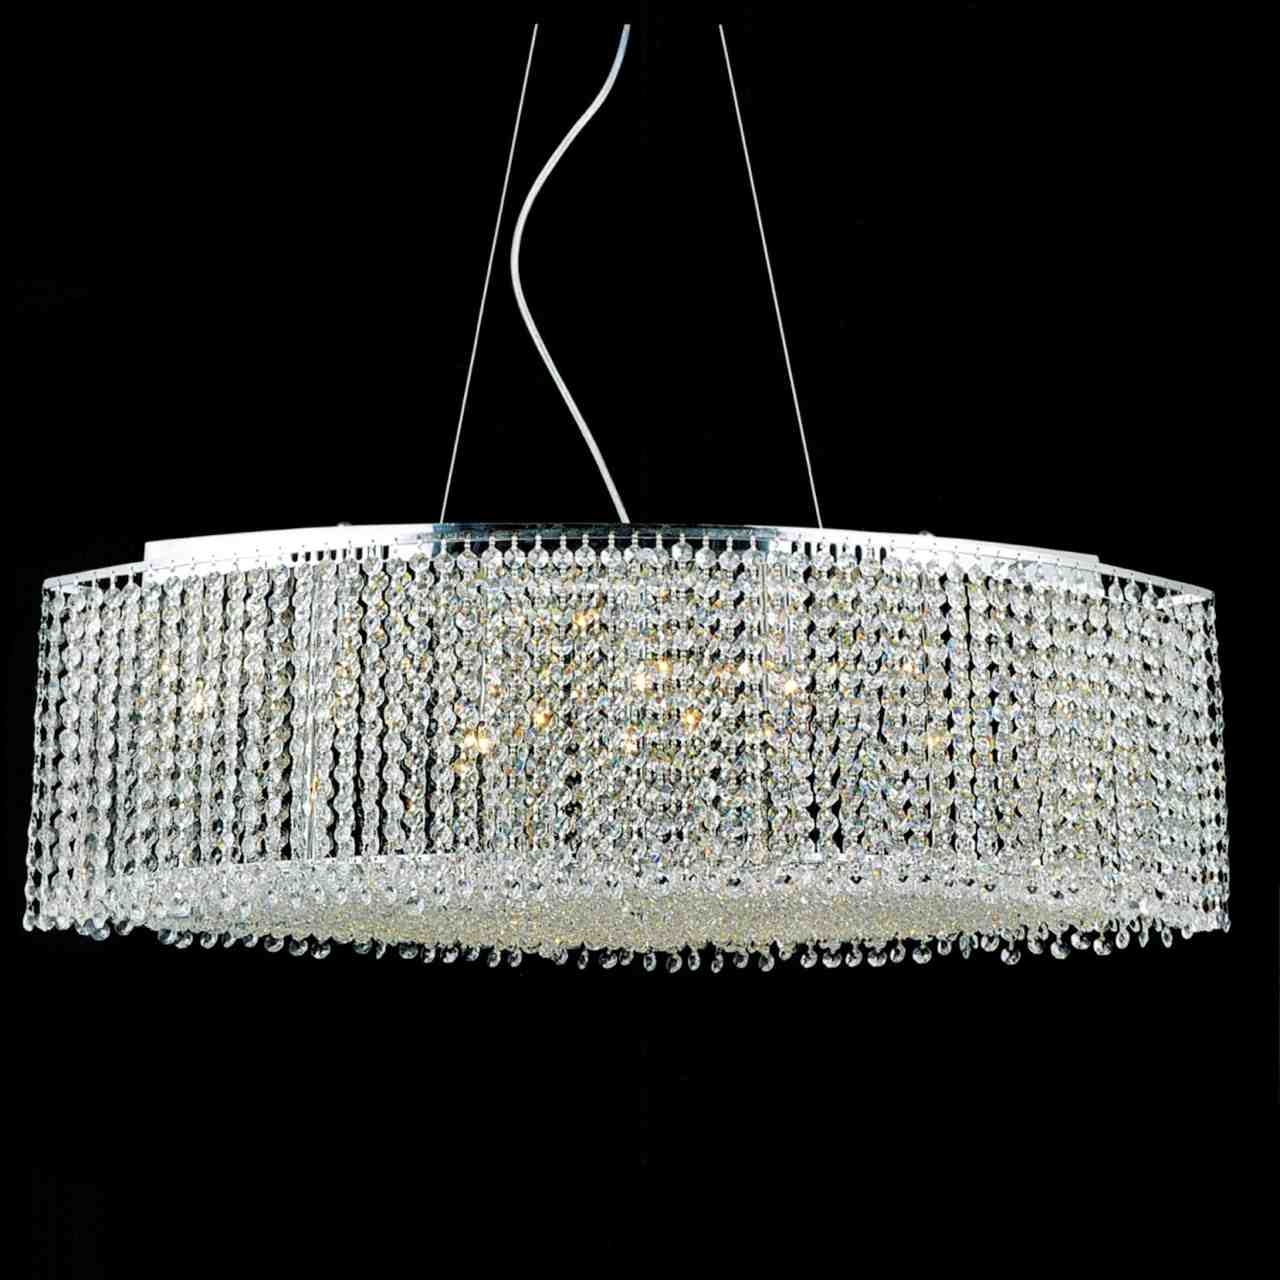 Brizzo Lighting Stores 35 Rainbow Modern Linear Crystal Regarding Crystal Chrome Chandelier (#5 of 12)